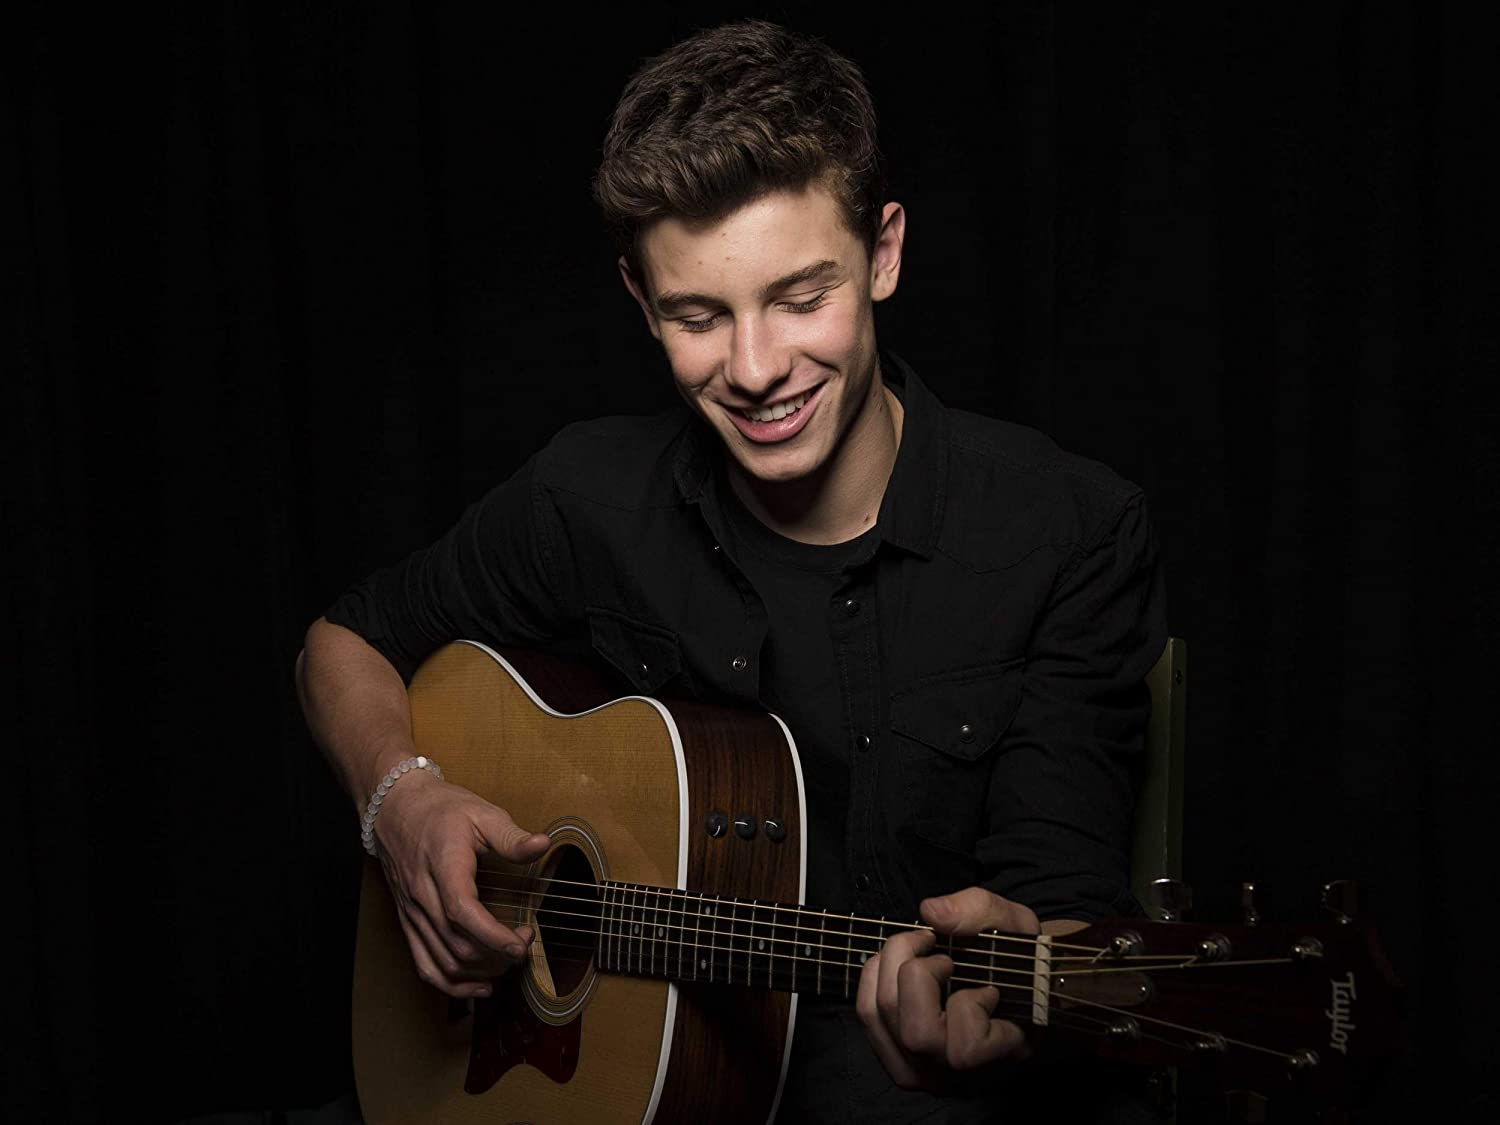 Shawn Mendes Popular Singer Poster Print Canvas Art Wall Art Print Gift Poster Unframed Printing Size - 11